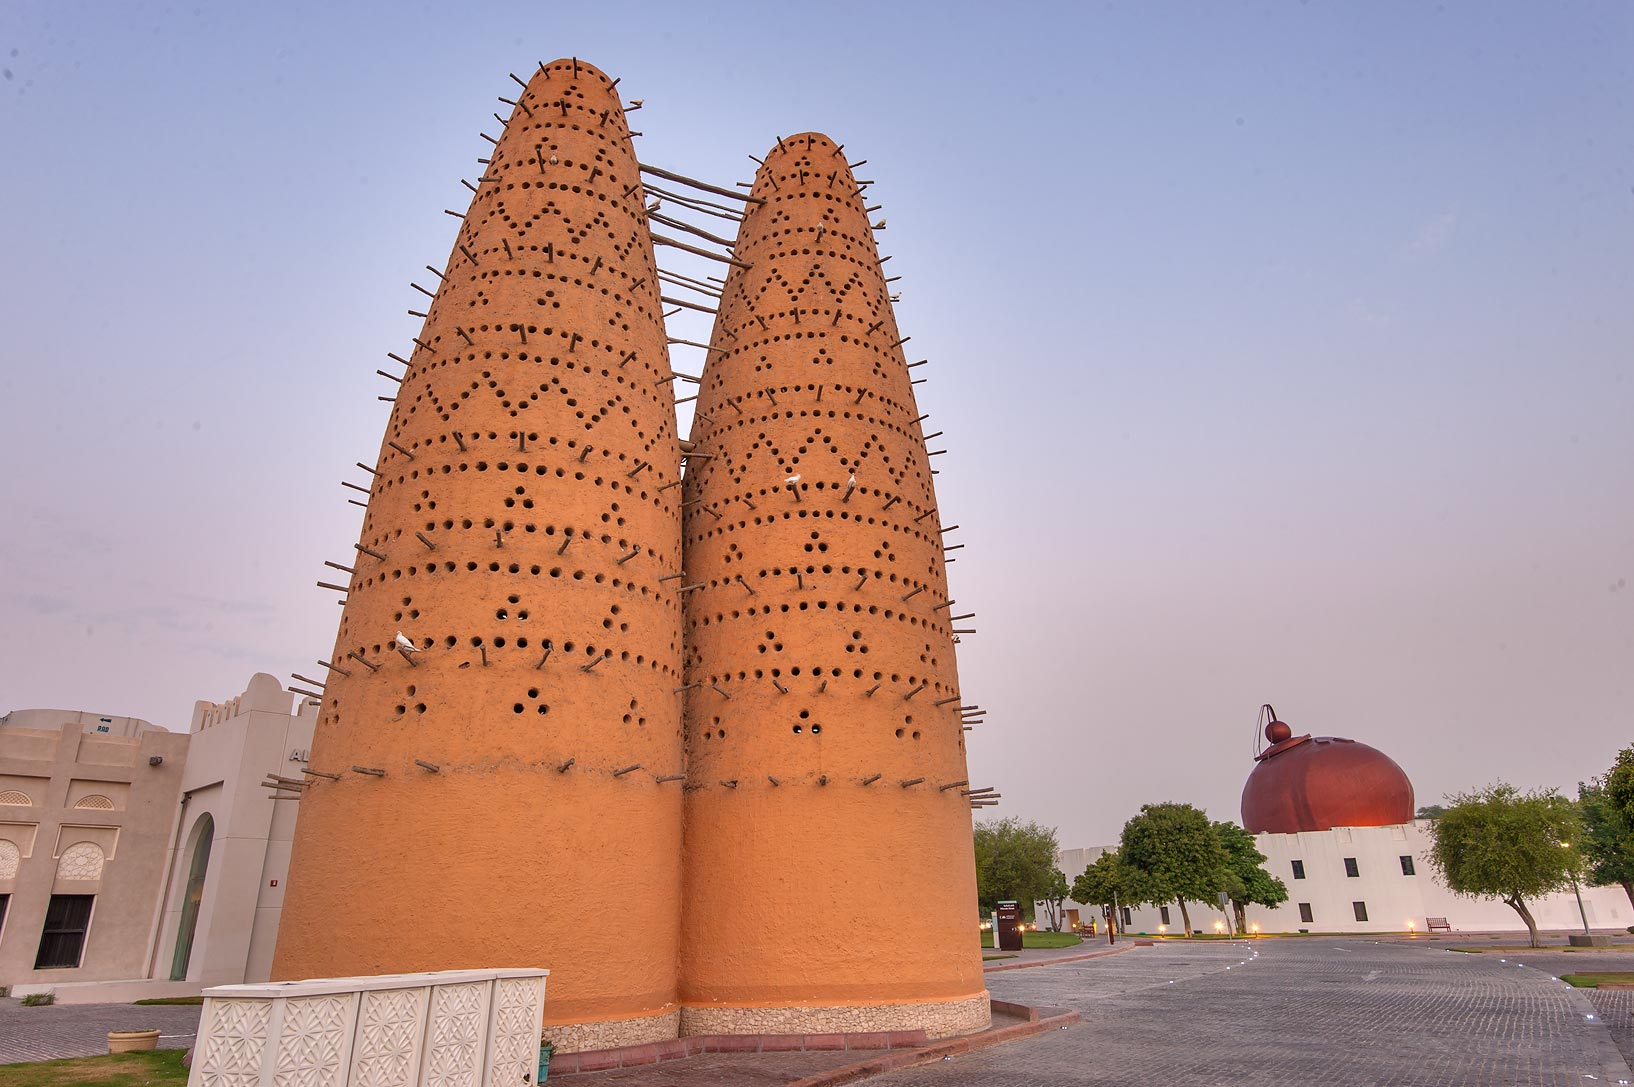 Al Hikmi St. dovecote and bird souq in Katara Cultural Village. Doha, Qatar